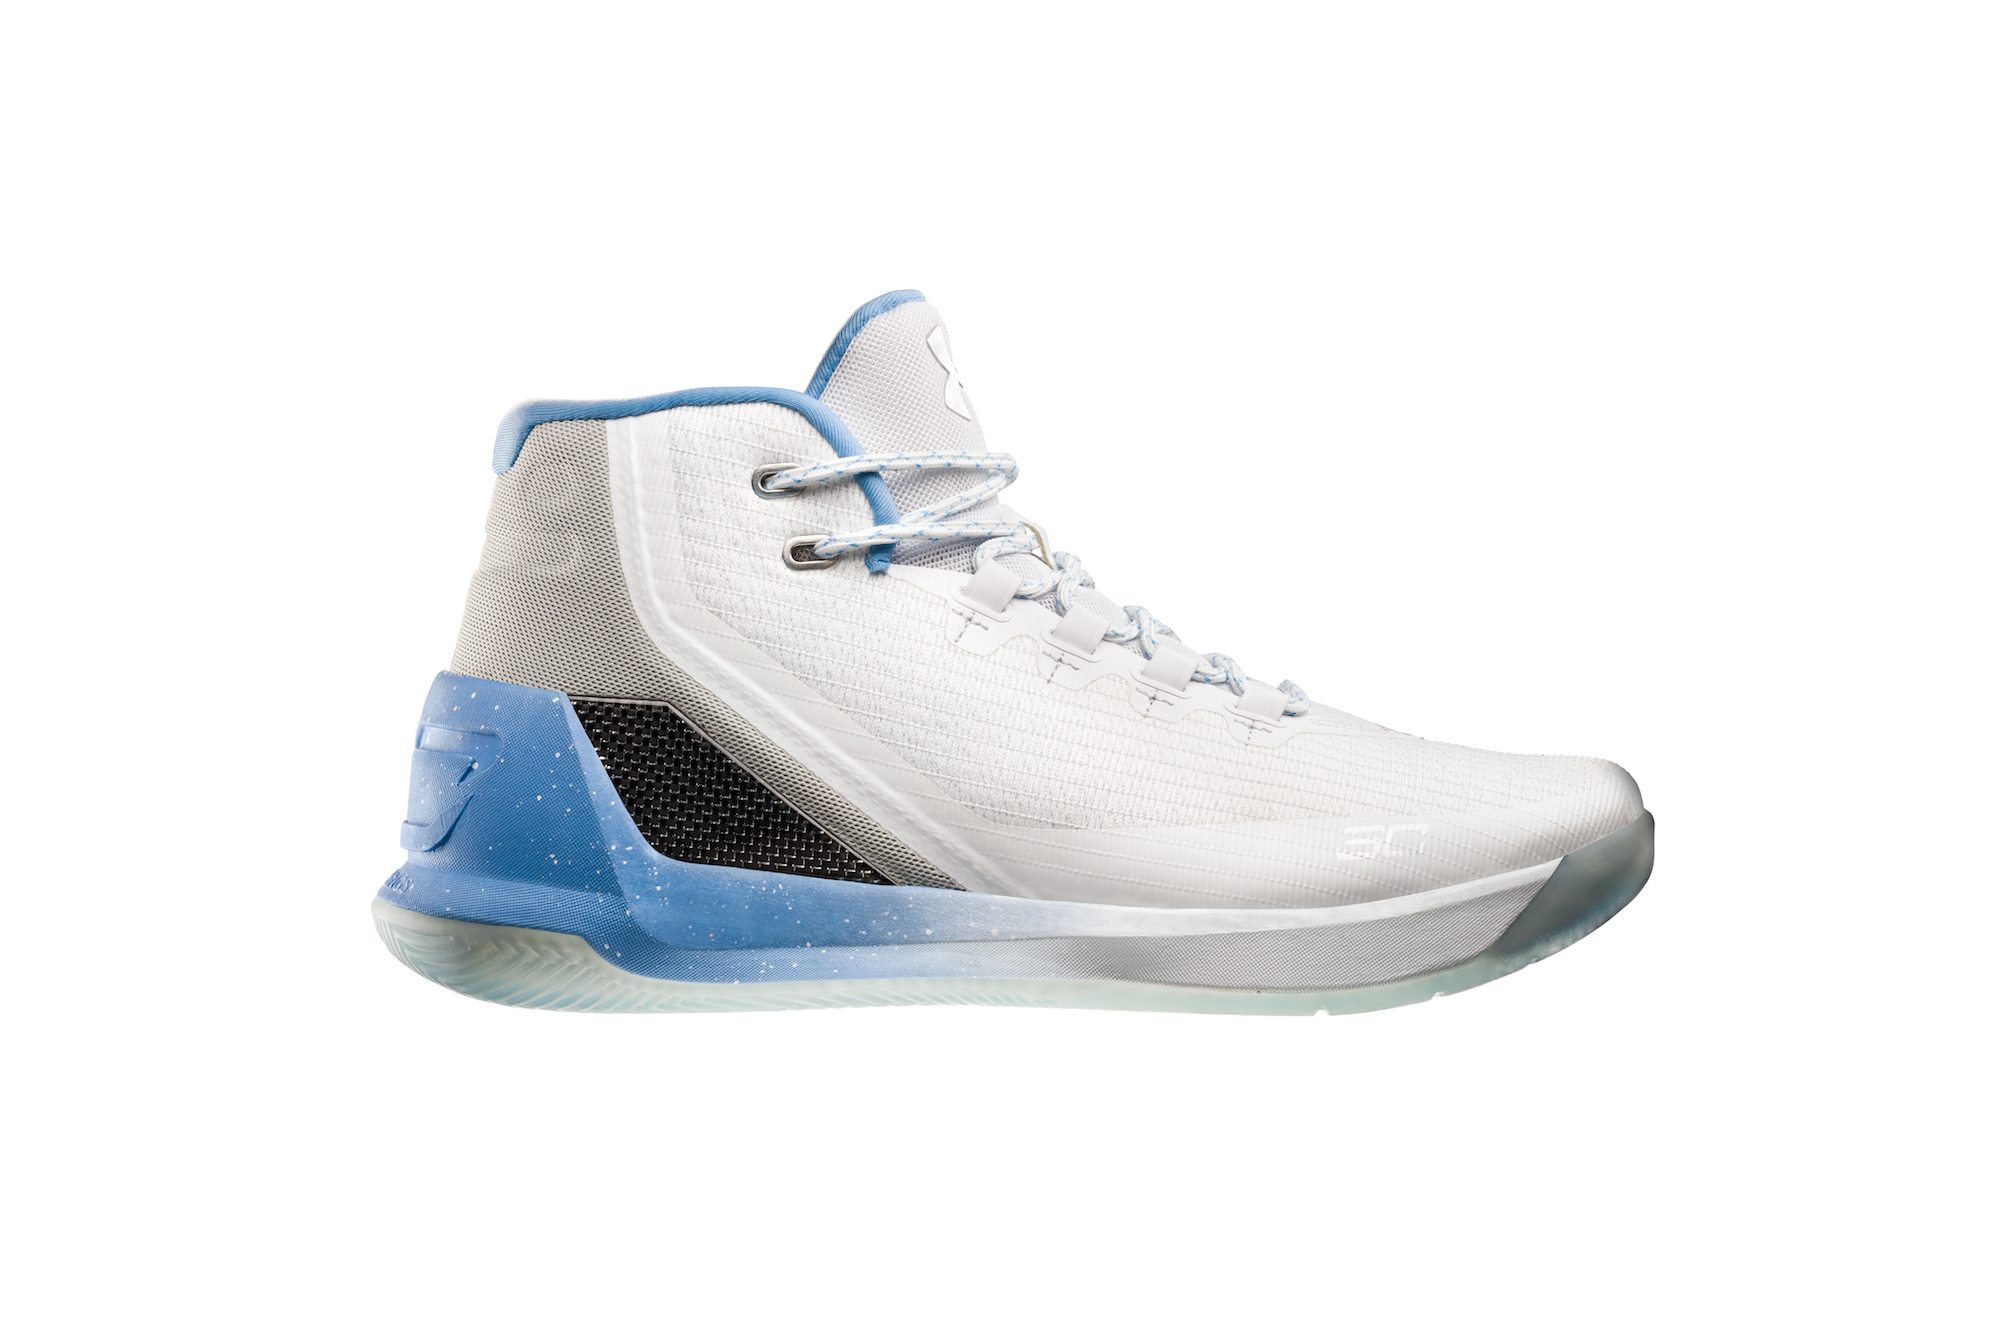 b428eee7e826 coupon code for curry 3 white opal blue black guy a317b dad20